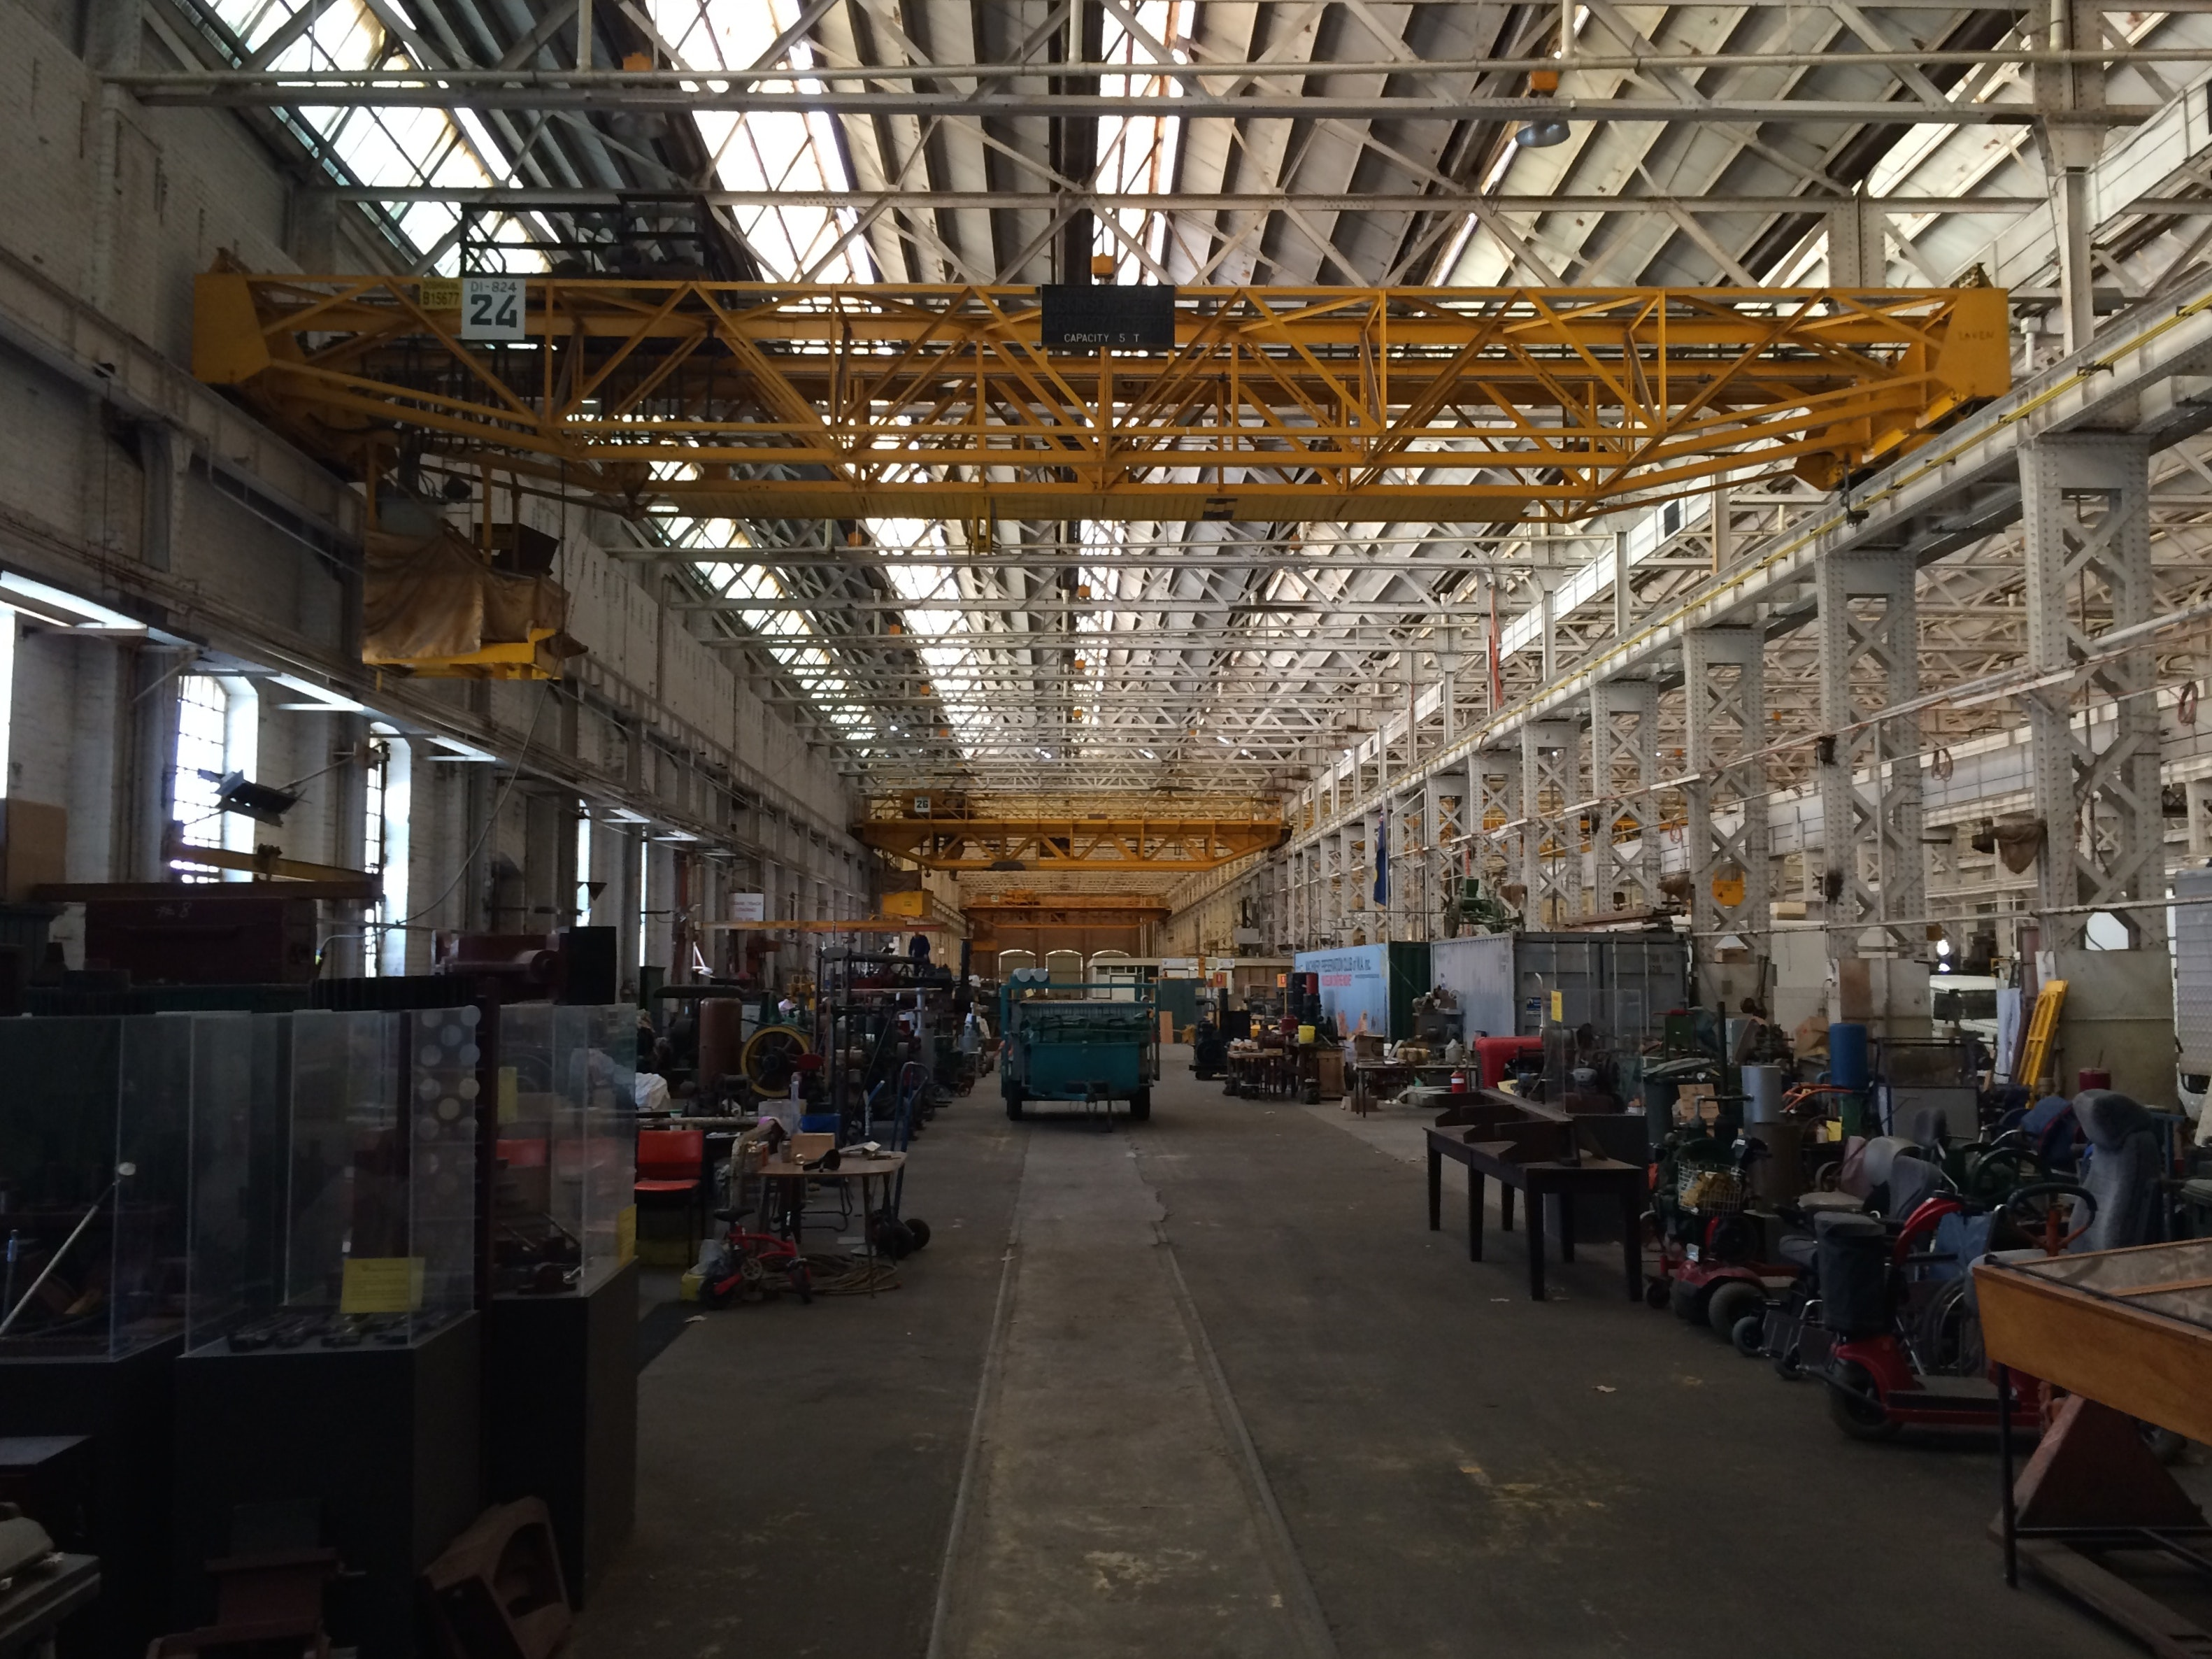 Midland Railway Workshops